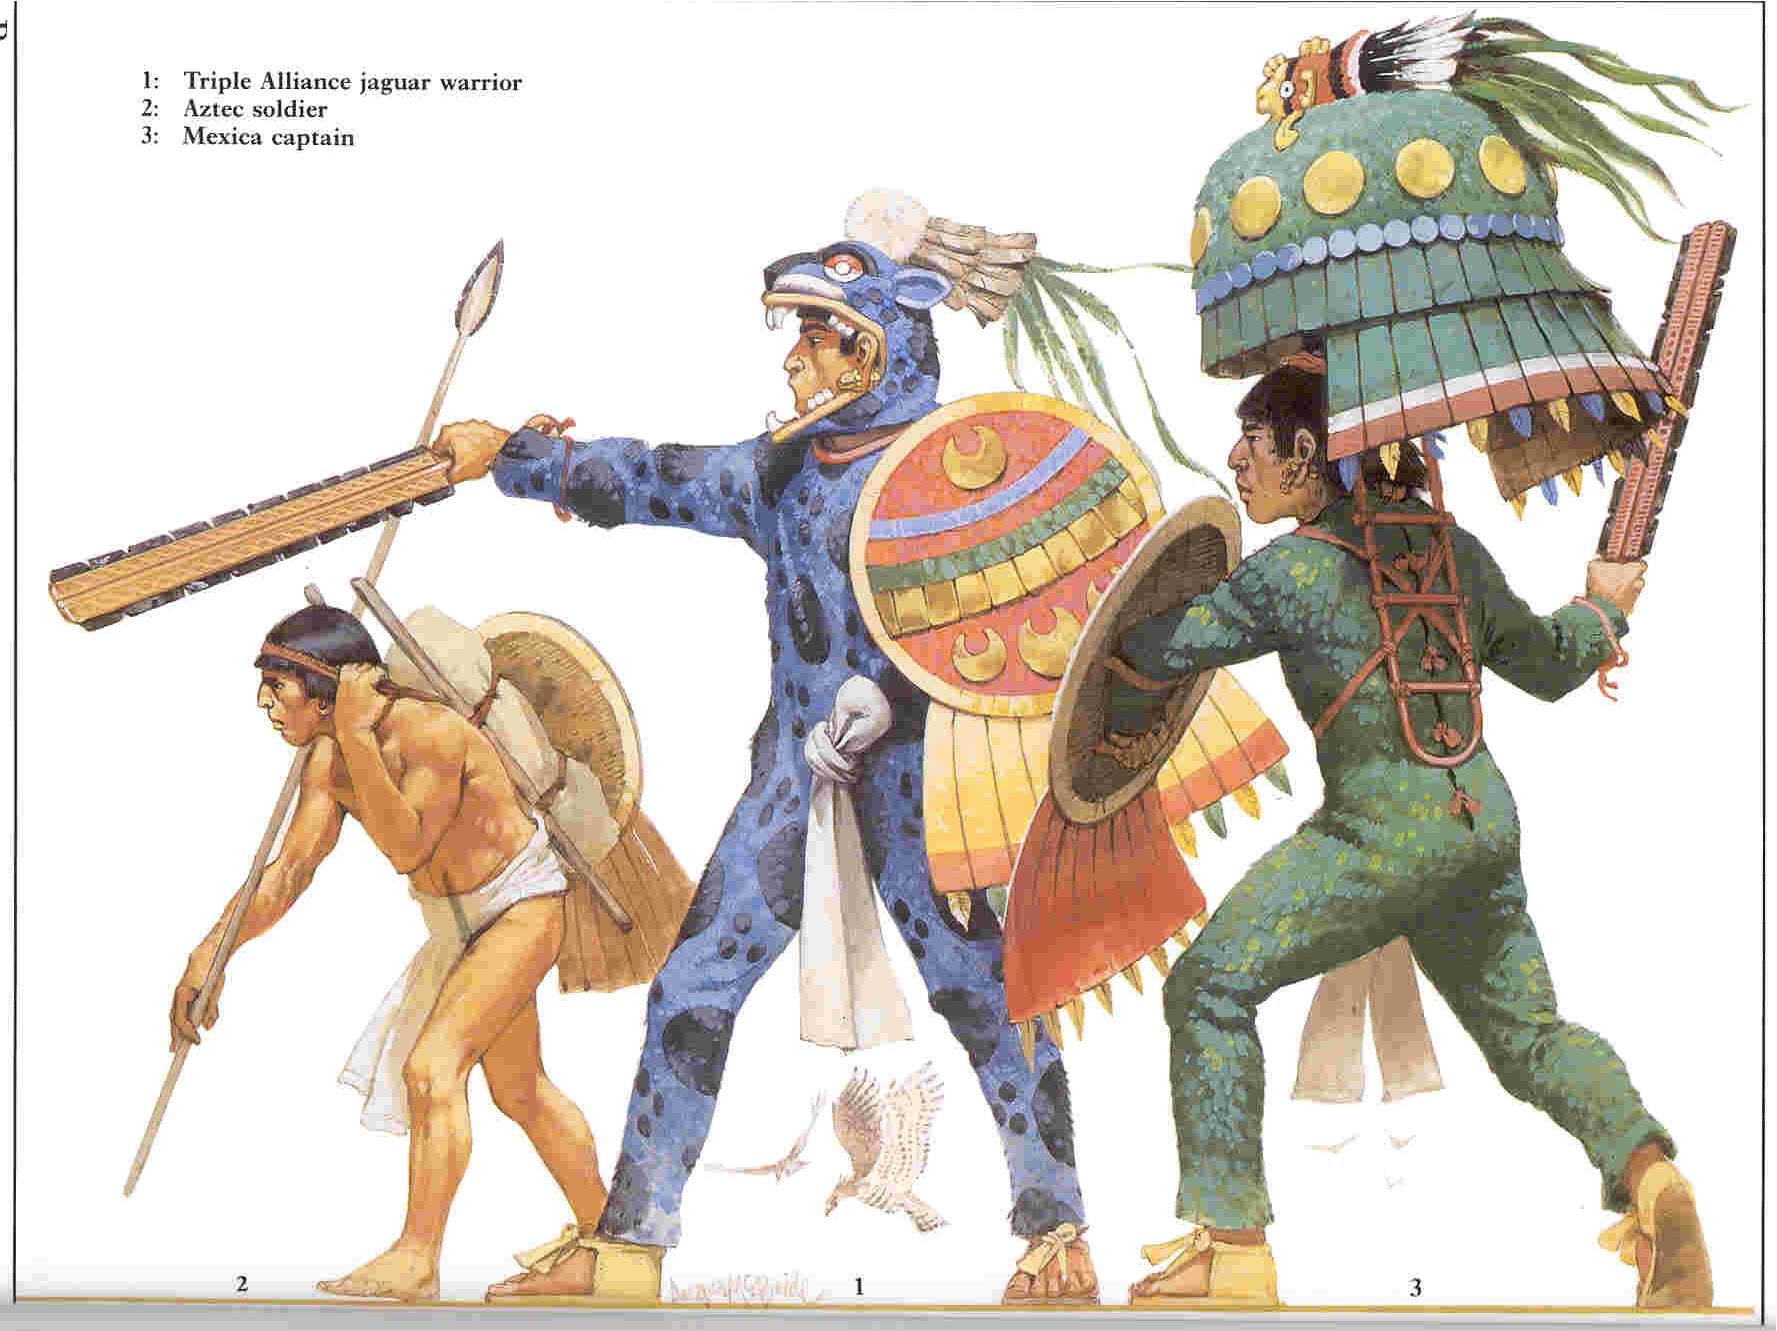 aztec online dating Aztec herbal remedies  (may 31, 2000) language: english theres a review online aztec remedies for the  archeo-logical remains dating back sixty thousand rized.